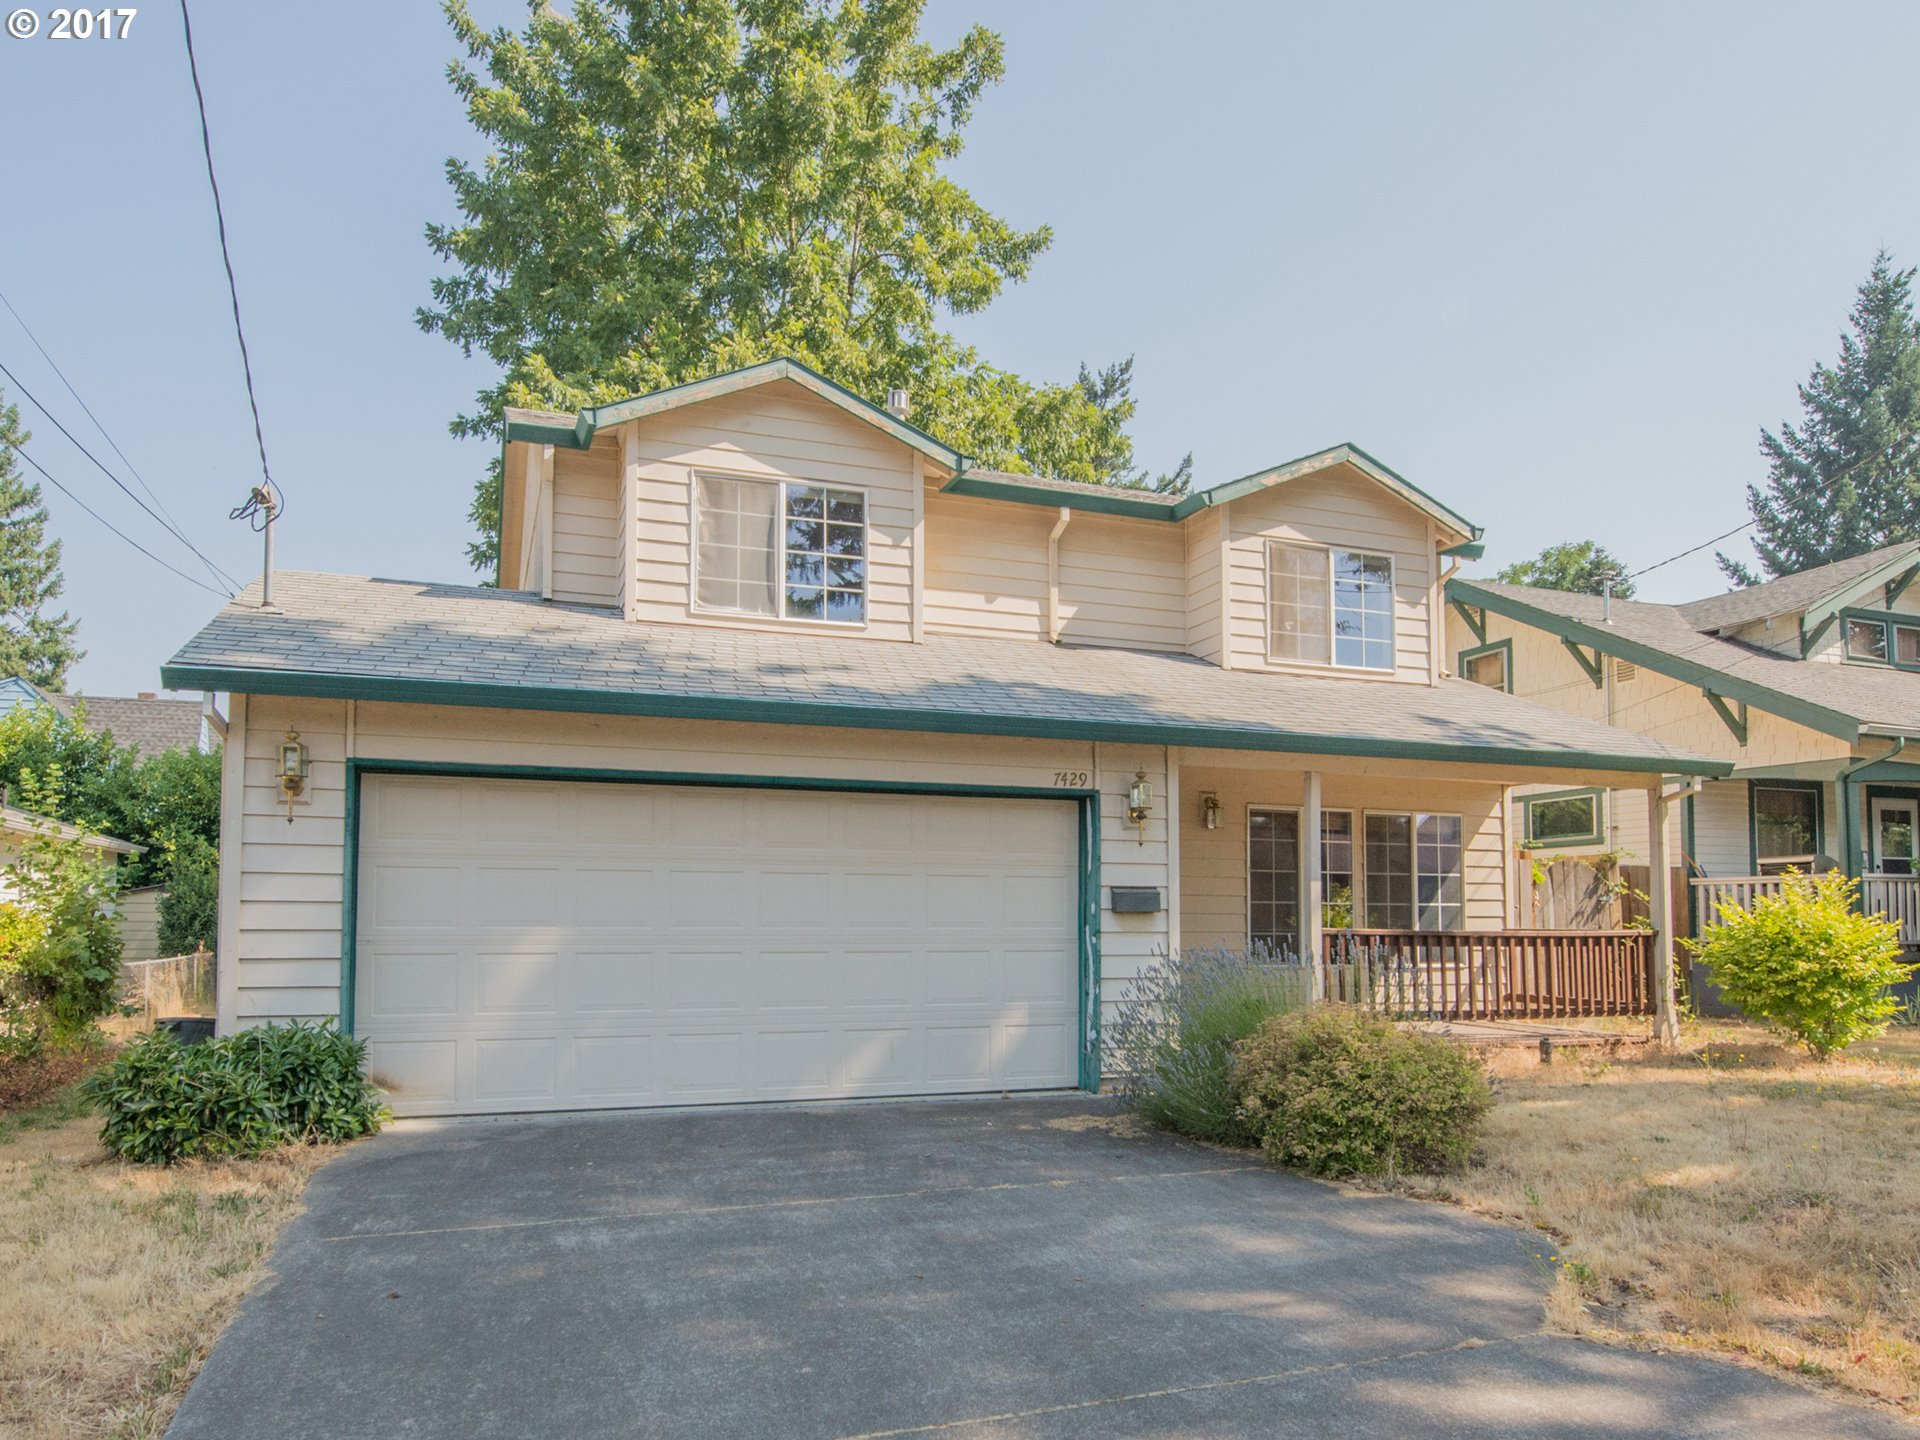 1306 sq. ft 3 bedrooms 2 bathrooms  House ,Portland, OR